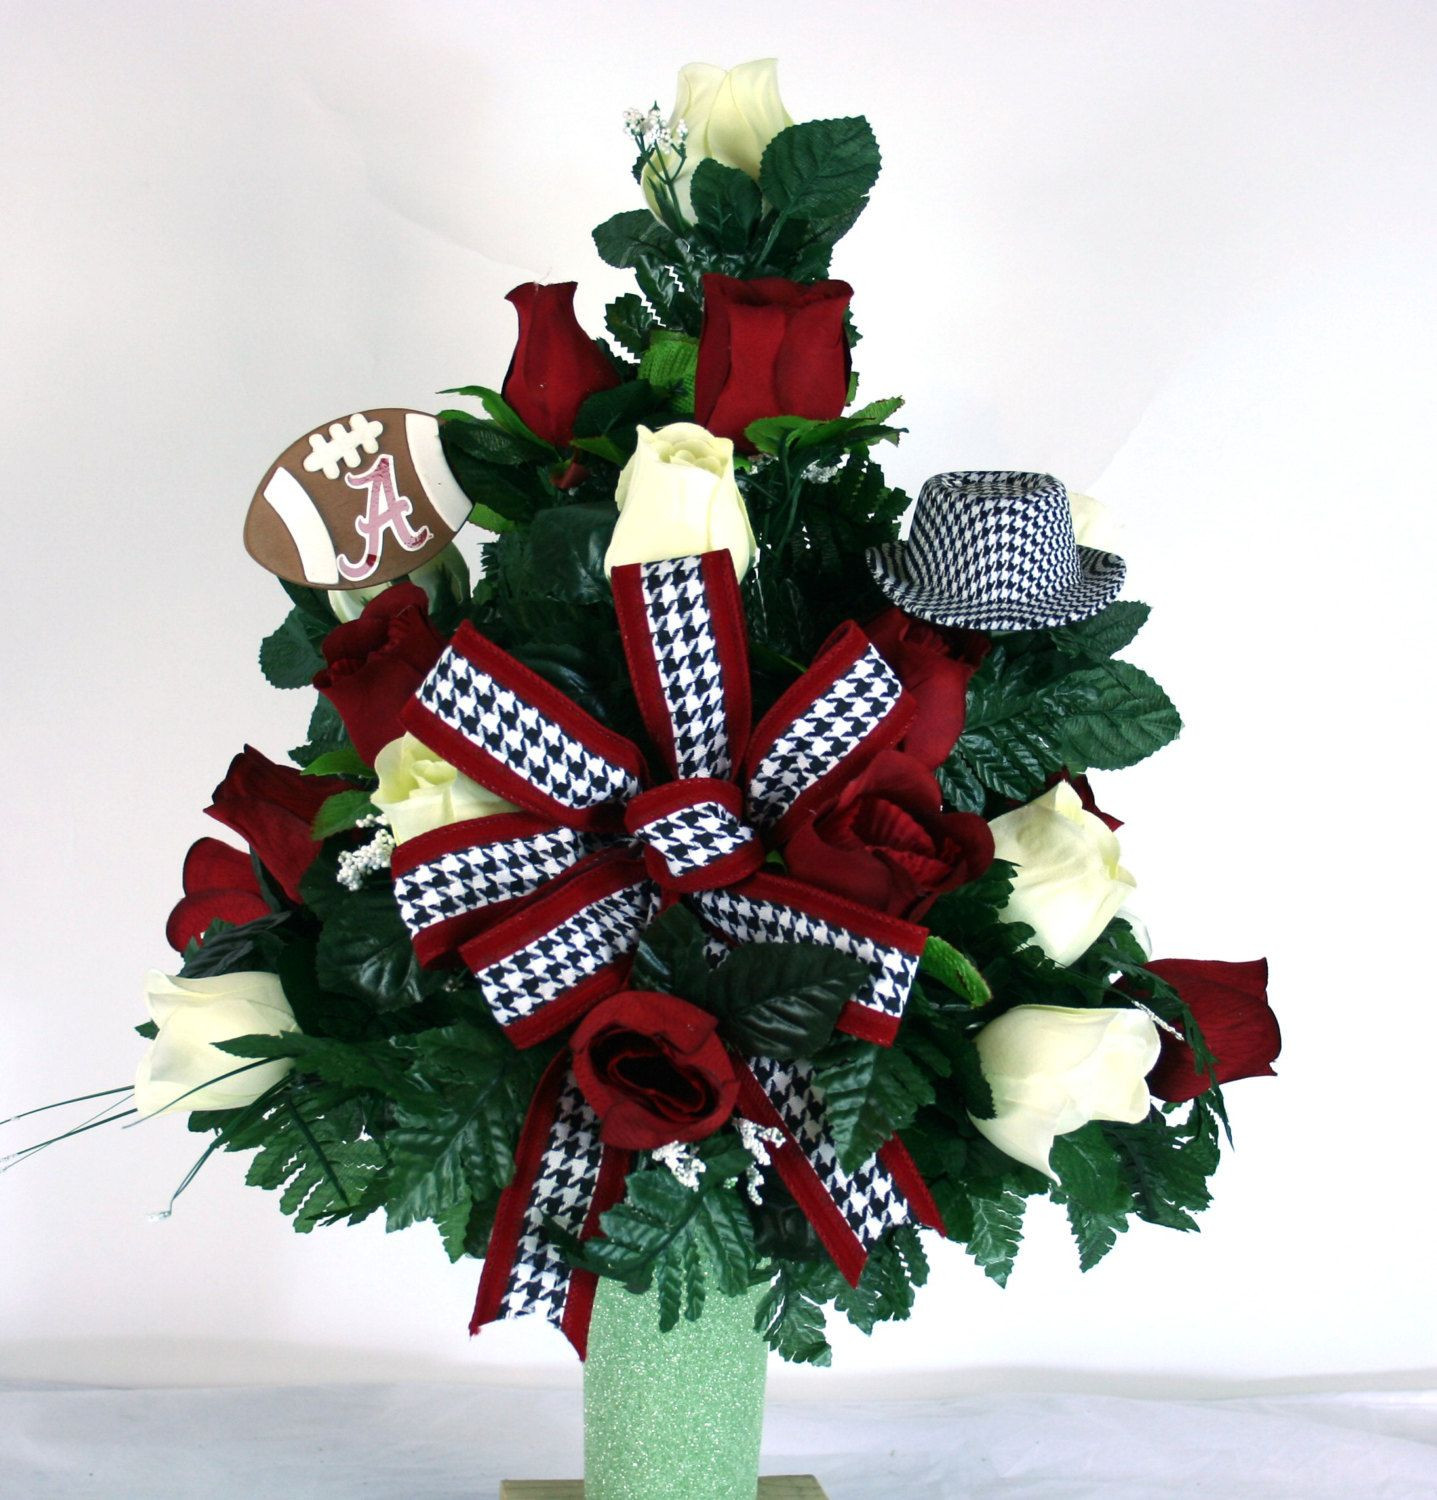 Stay In the Vase Cemetery Flowers Of Stay In the Vase Cemetery Flowers Inside Alabama Crimson Tide Fan Vase Cemetery Flower Arrangement by Crazyboutdeco On Etsy